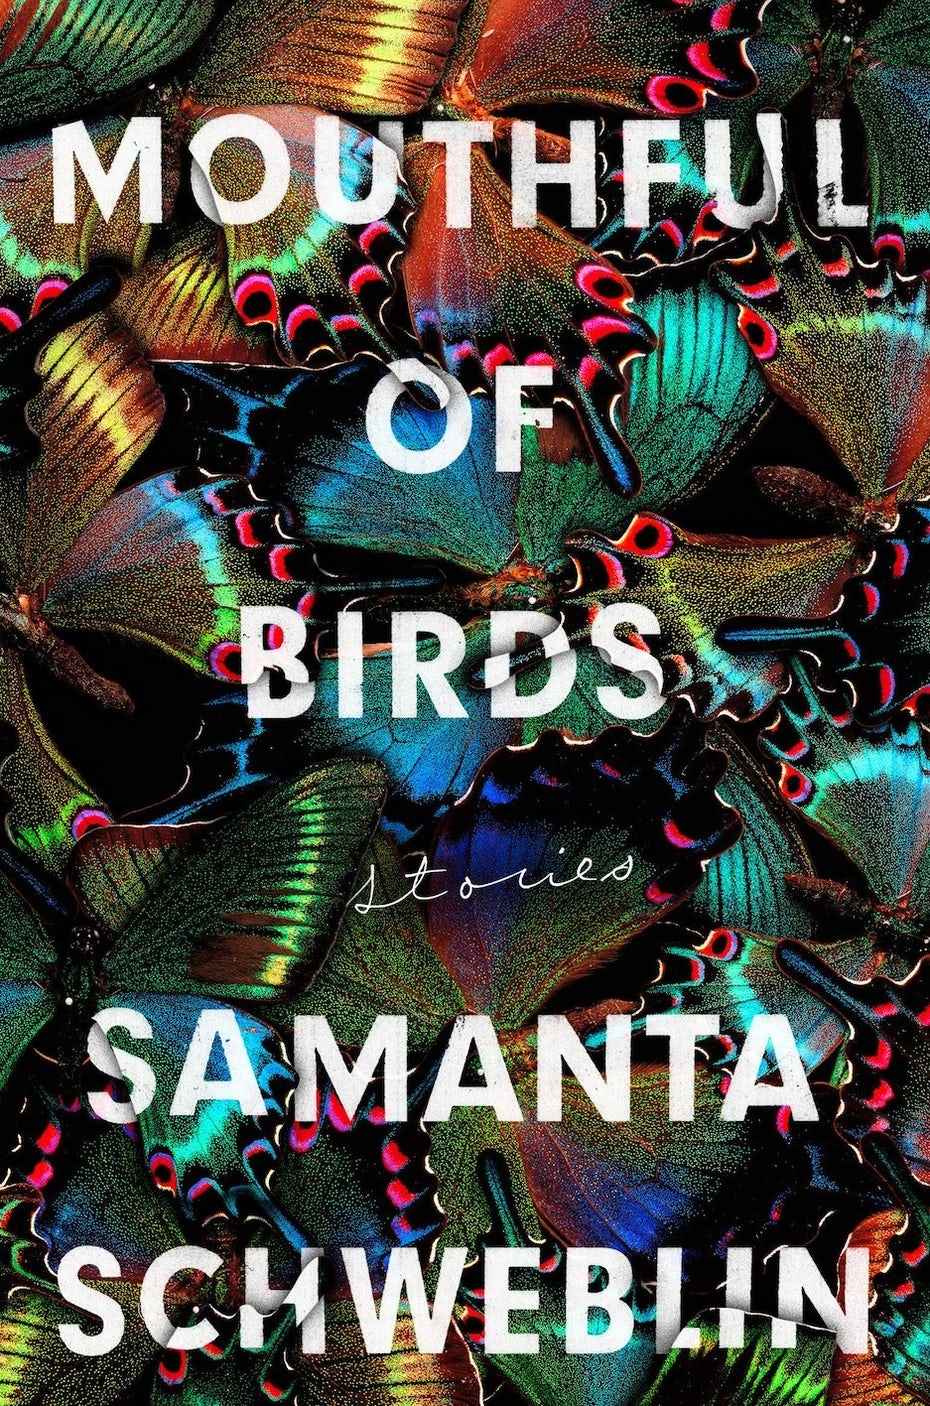 book cover trends 2020 example with texture made of butterflies